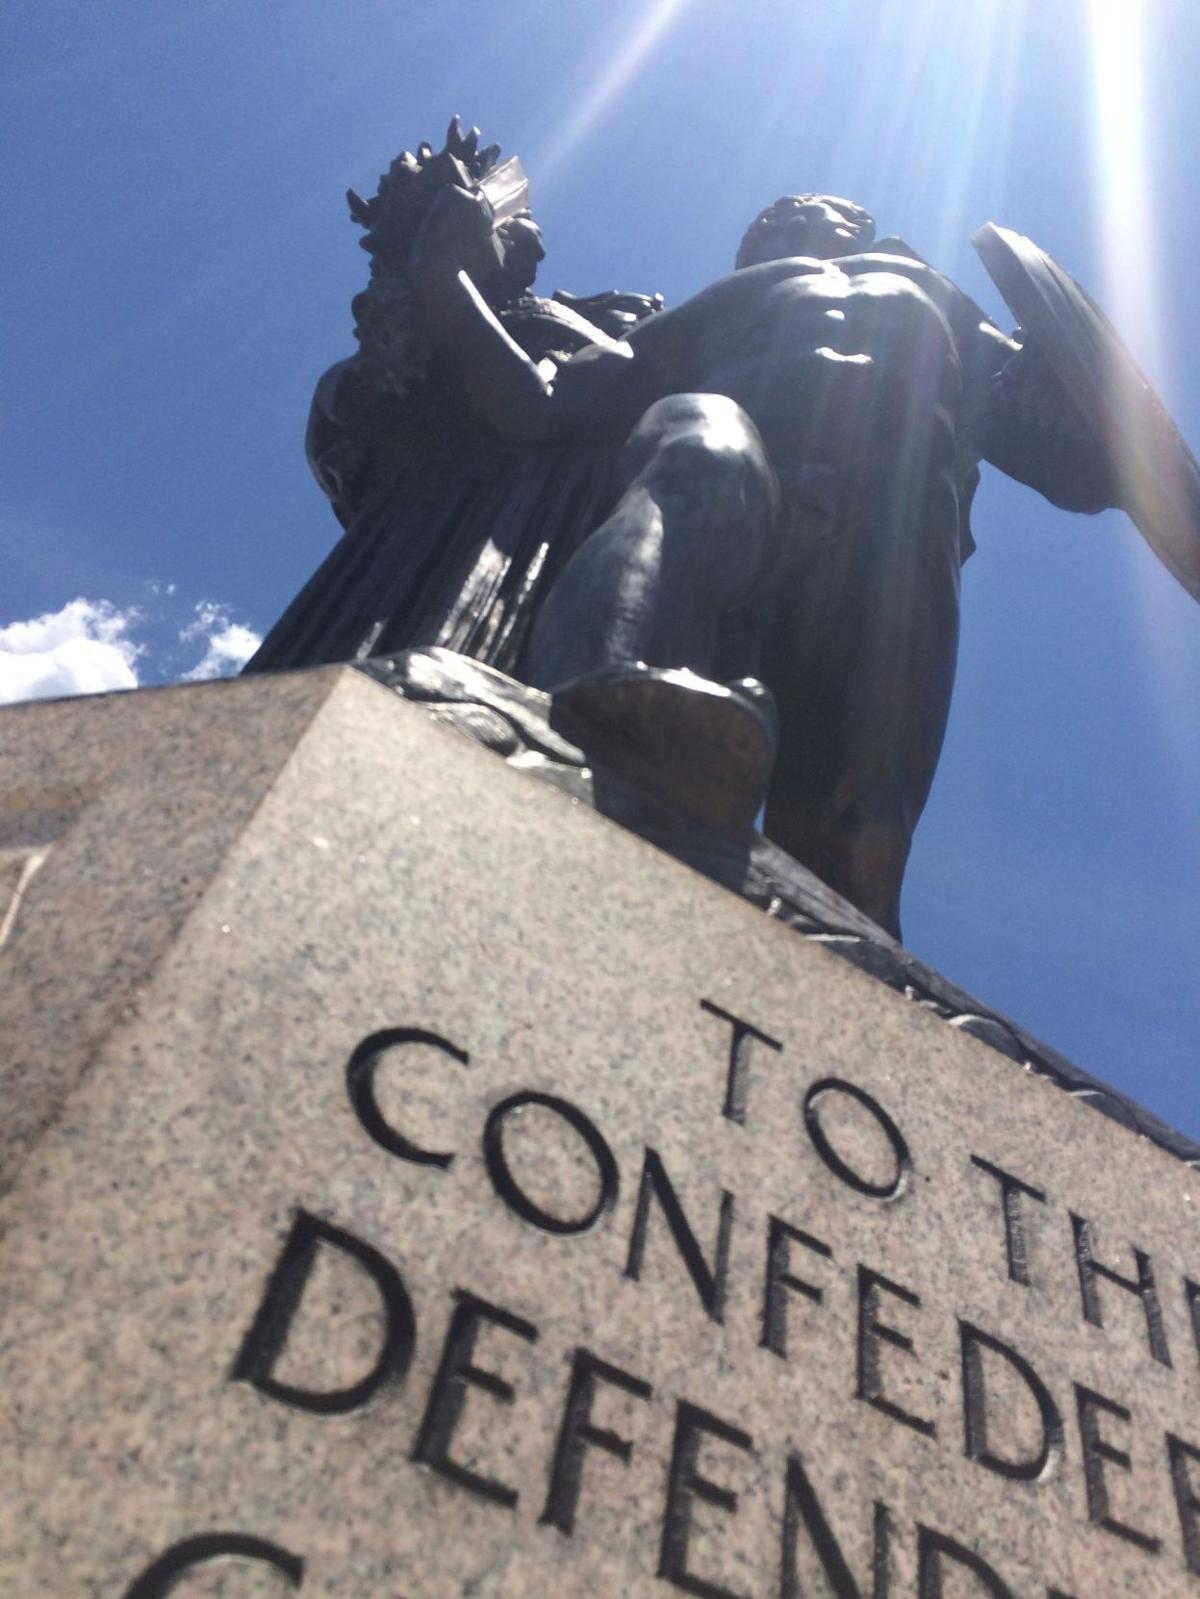 Confederate Defenders monument gets spruced up